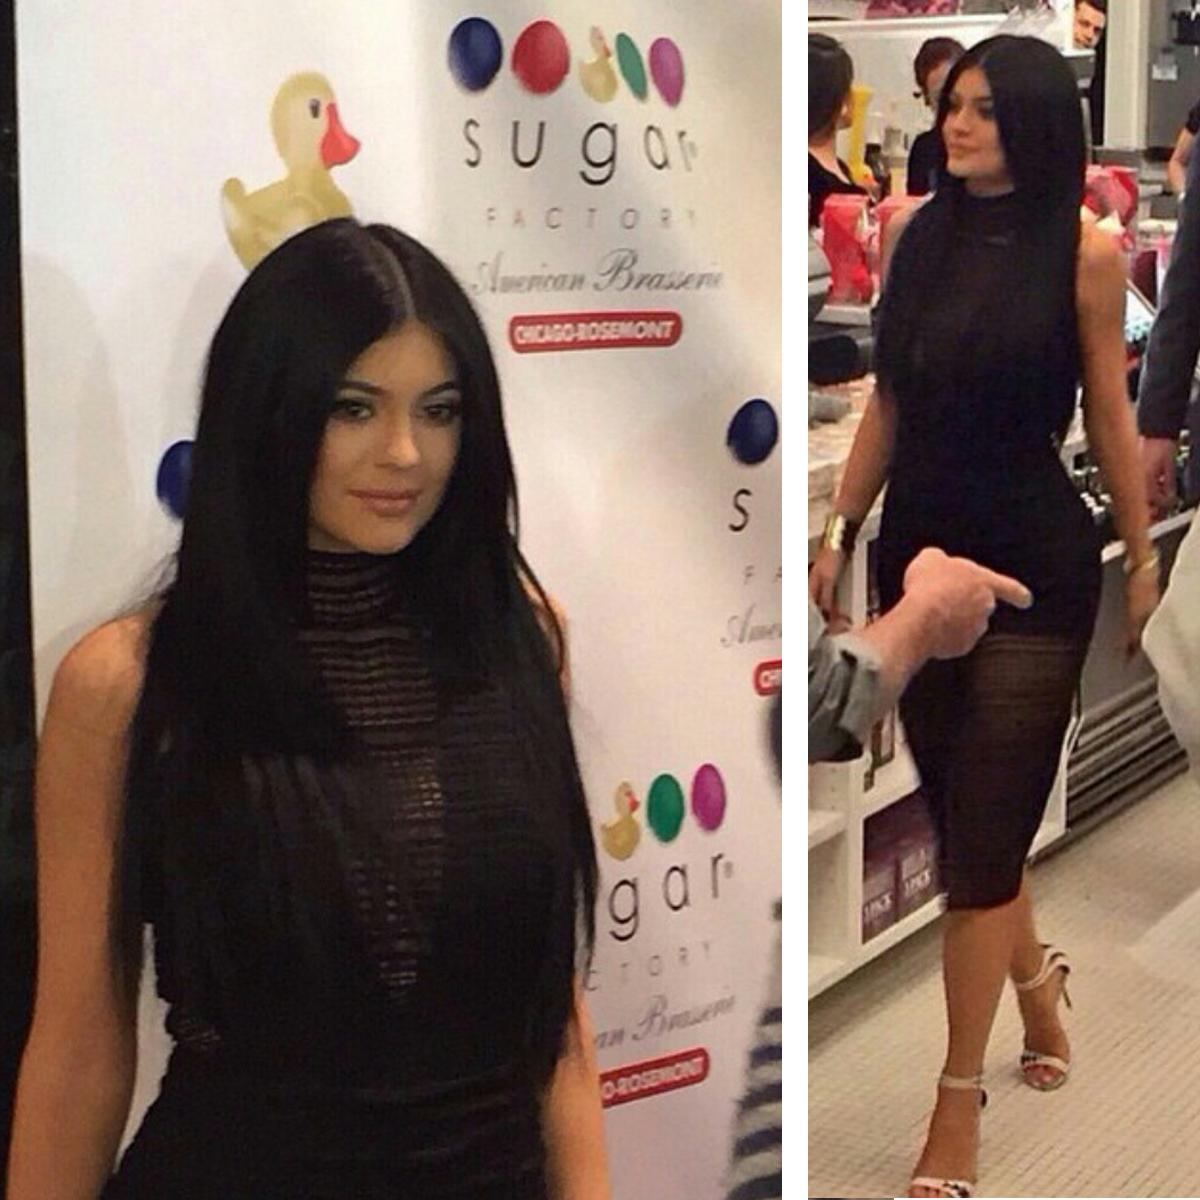 Here's some more shots of Kylie @sugarfactory #Chicago #Rosemont http://t.co/gGER11GQiG